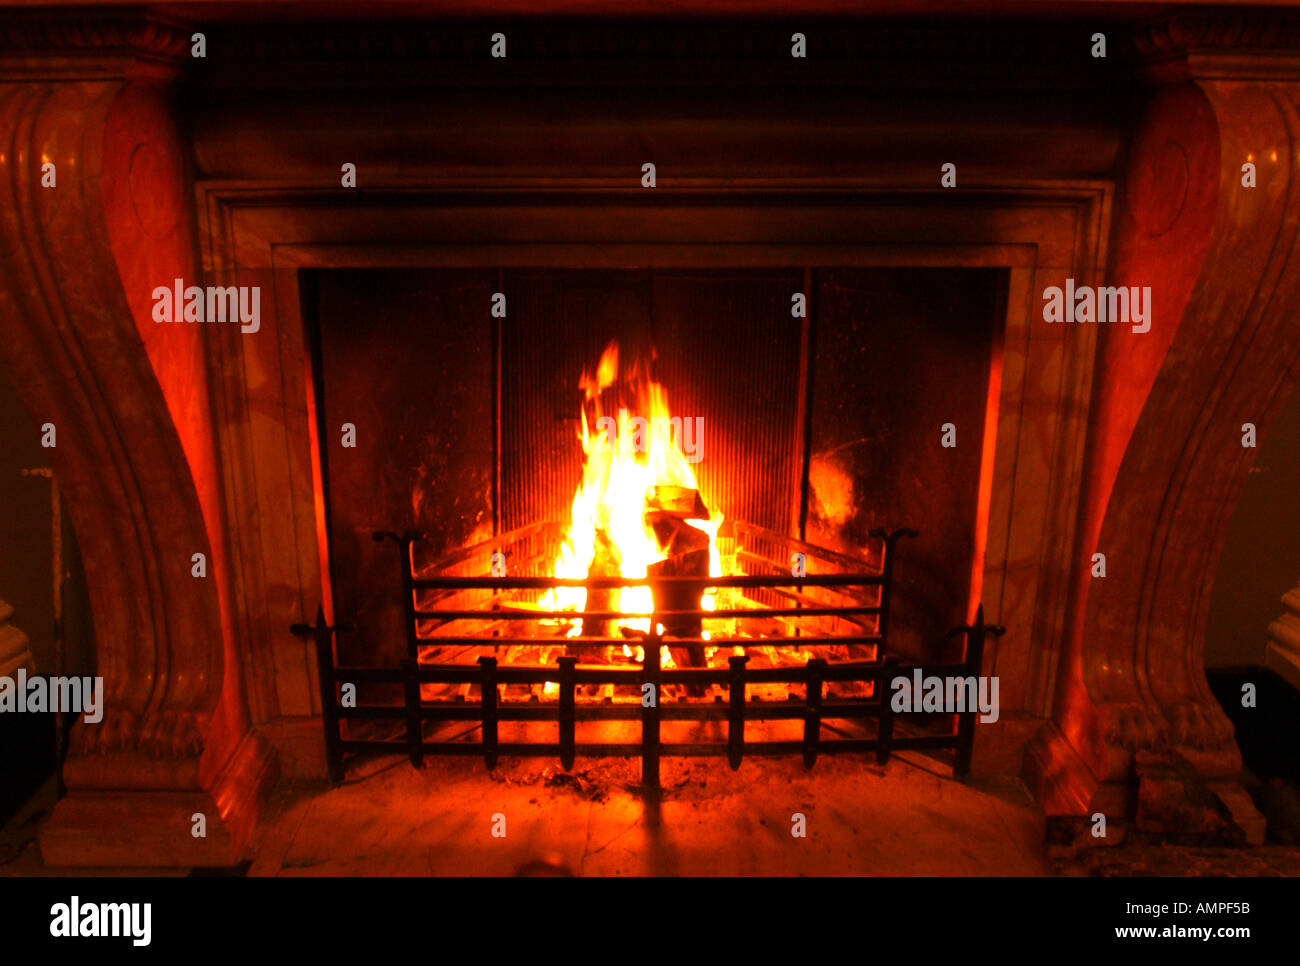 An open fireplace - Stock Image